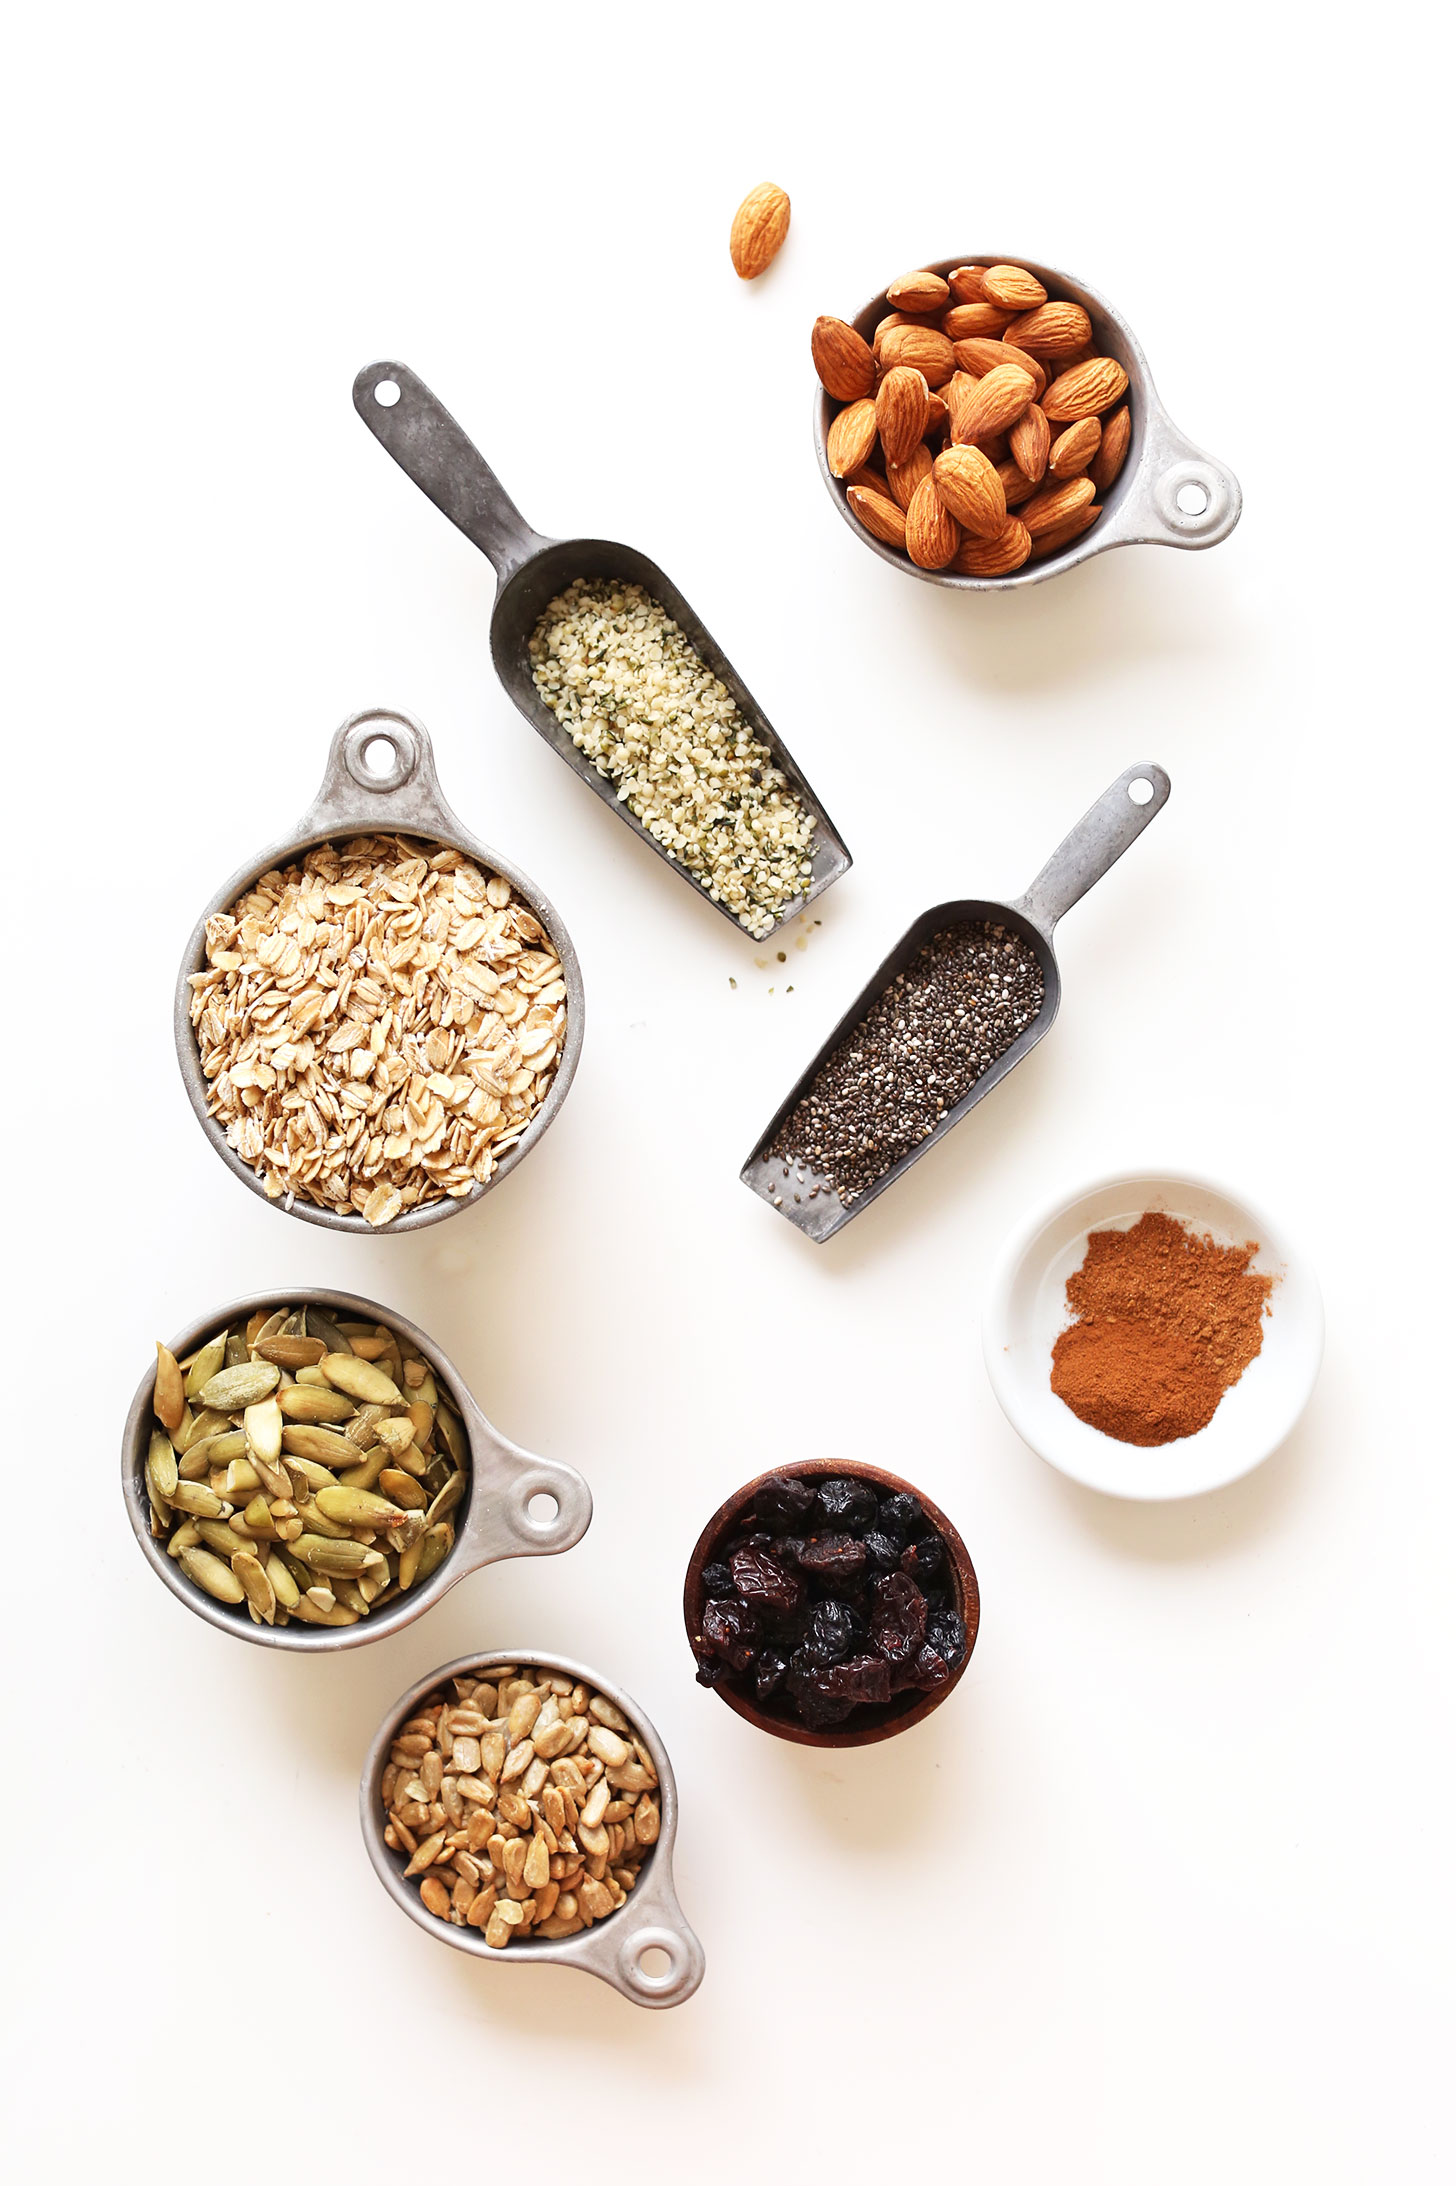 Hemp seeds, chia seeds, almonds, oats, pumpkin seeds, sunflower seeds, dried fruit, and spices for making homemade muesli